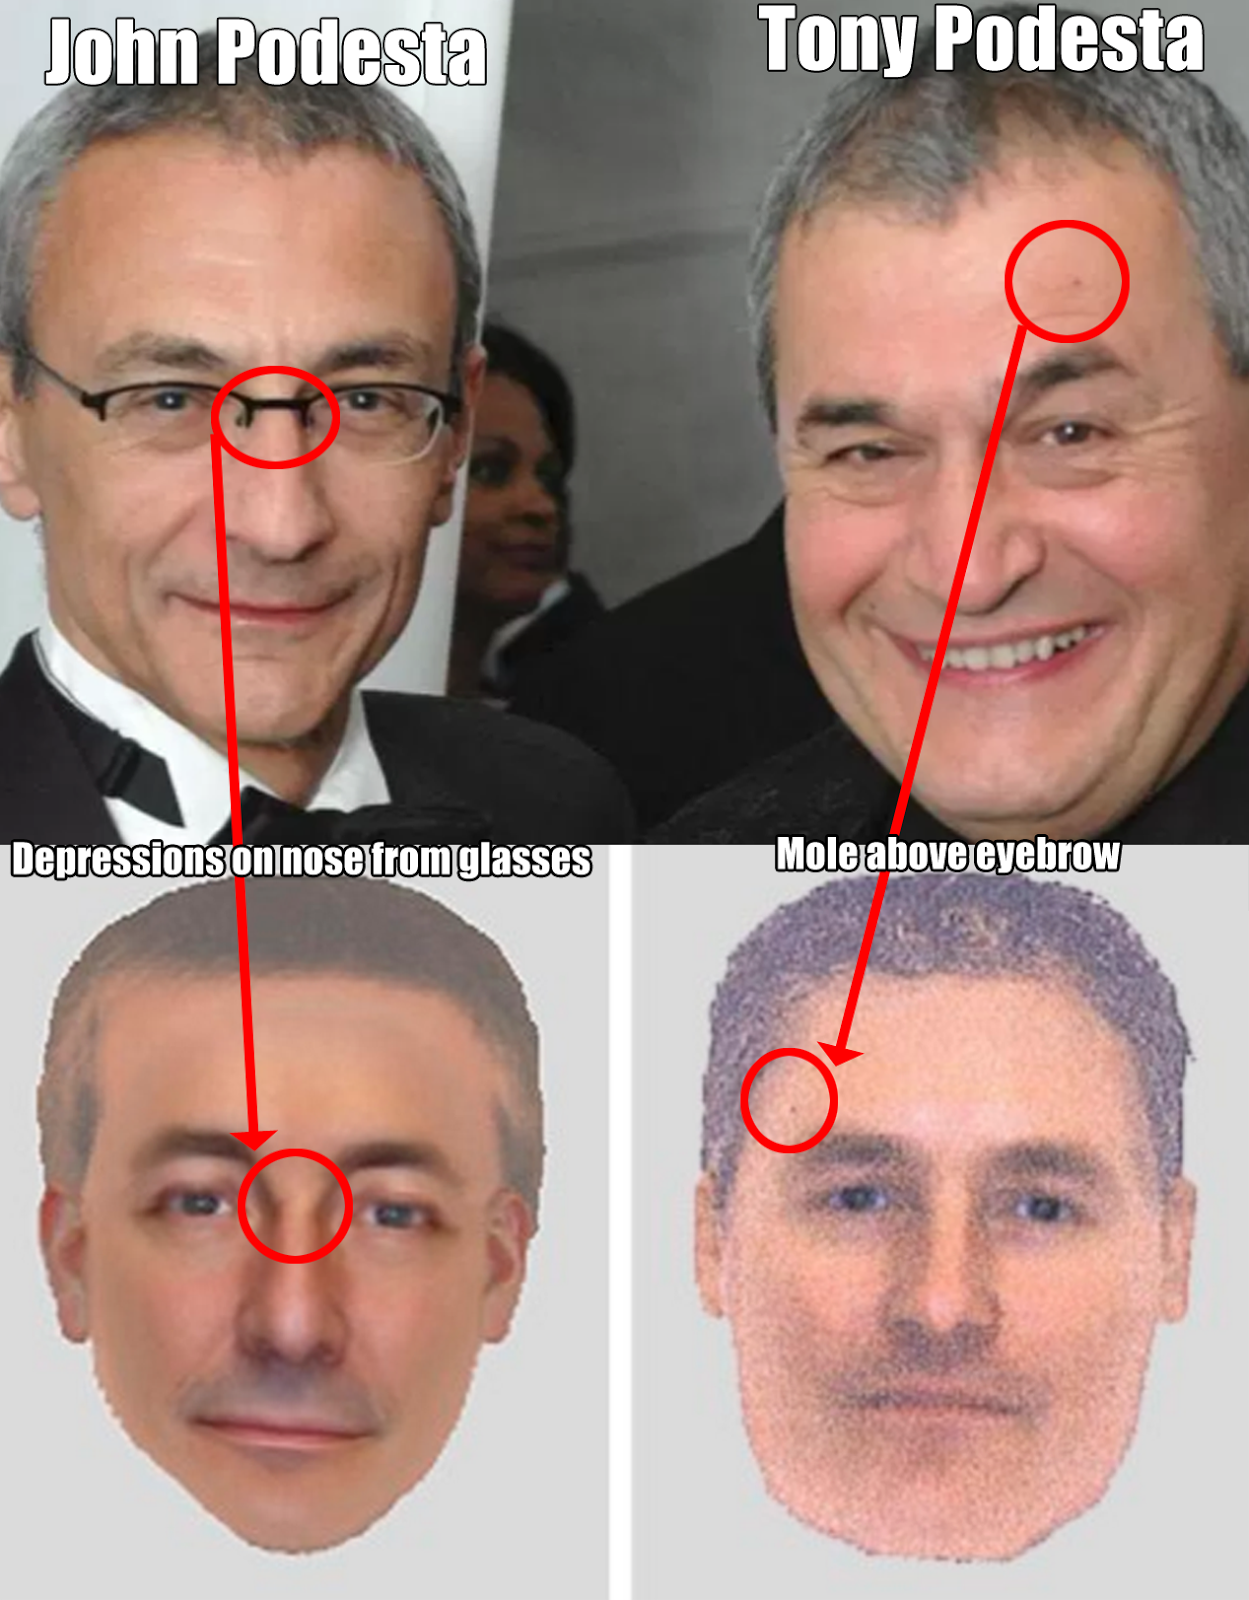 Madeleine McCann Netflix-film lying on Podesta and #Pizzagate connection